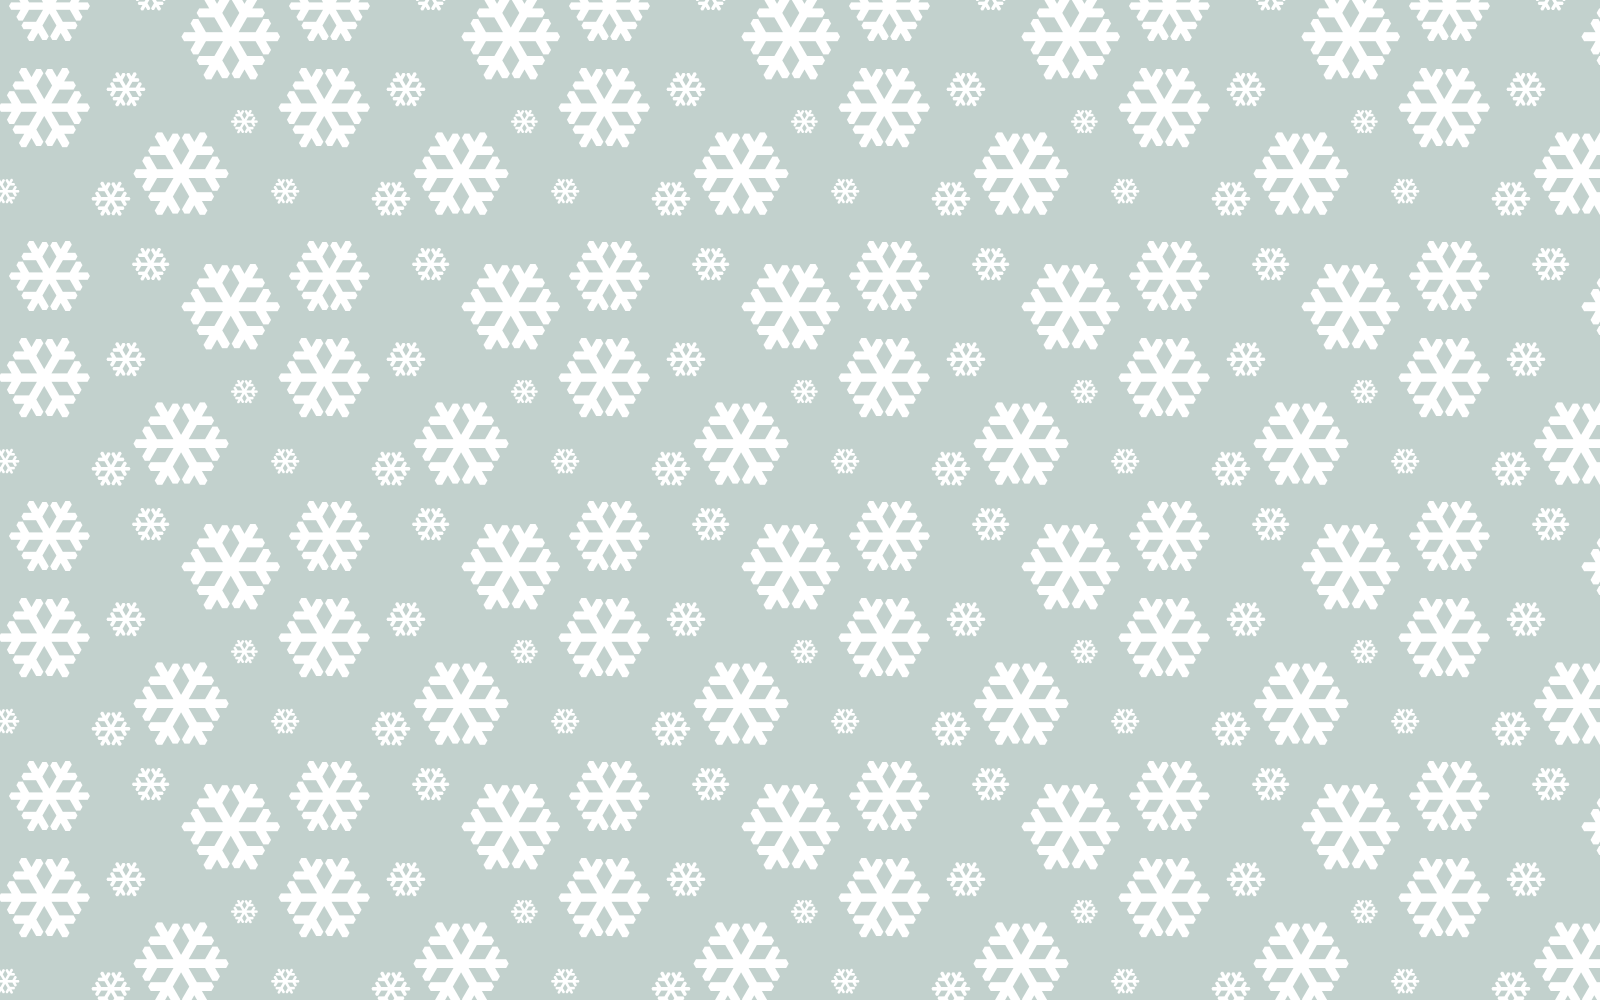 Christmas Backgrounds Tumblr.Cute Christmas Pattern Wallpapers Top Free Cute Christmas